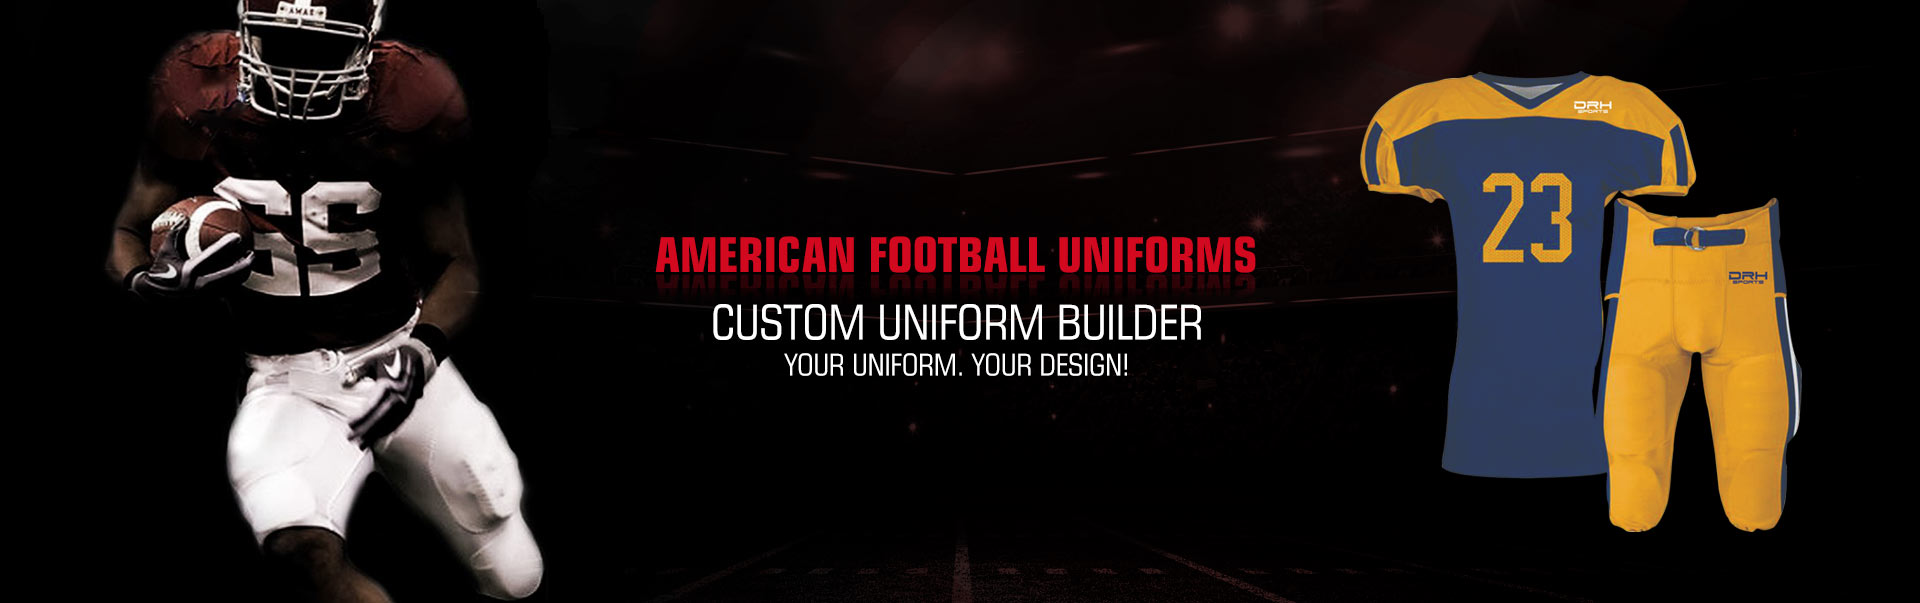 American Football Uniform Wholesaler, Suppliers in India